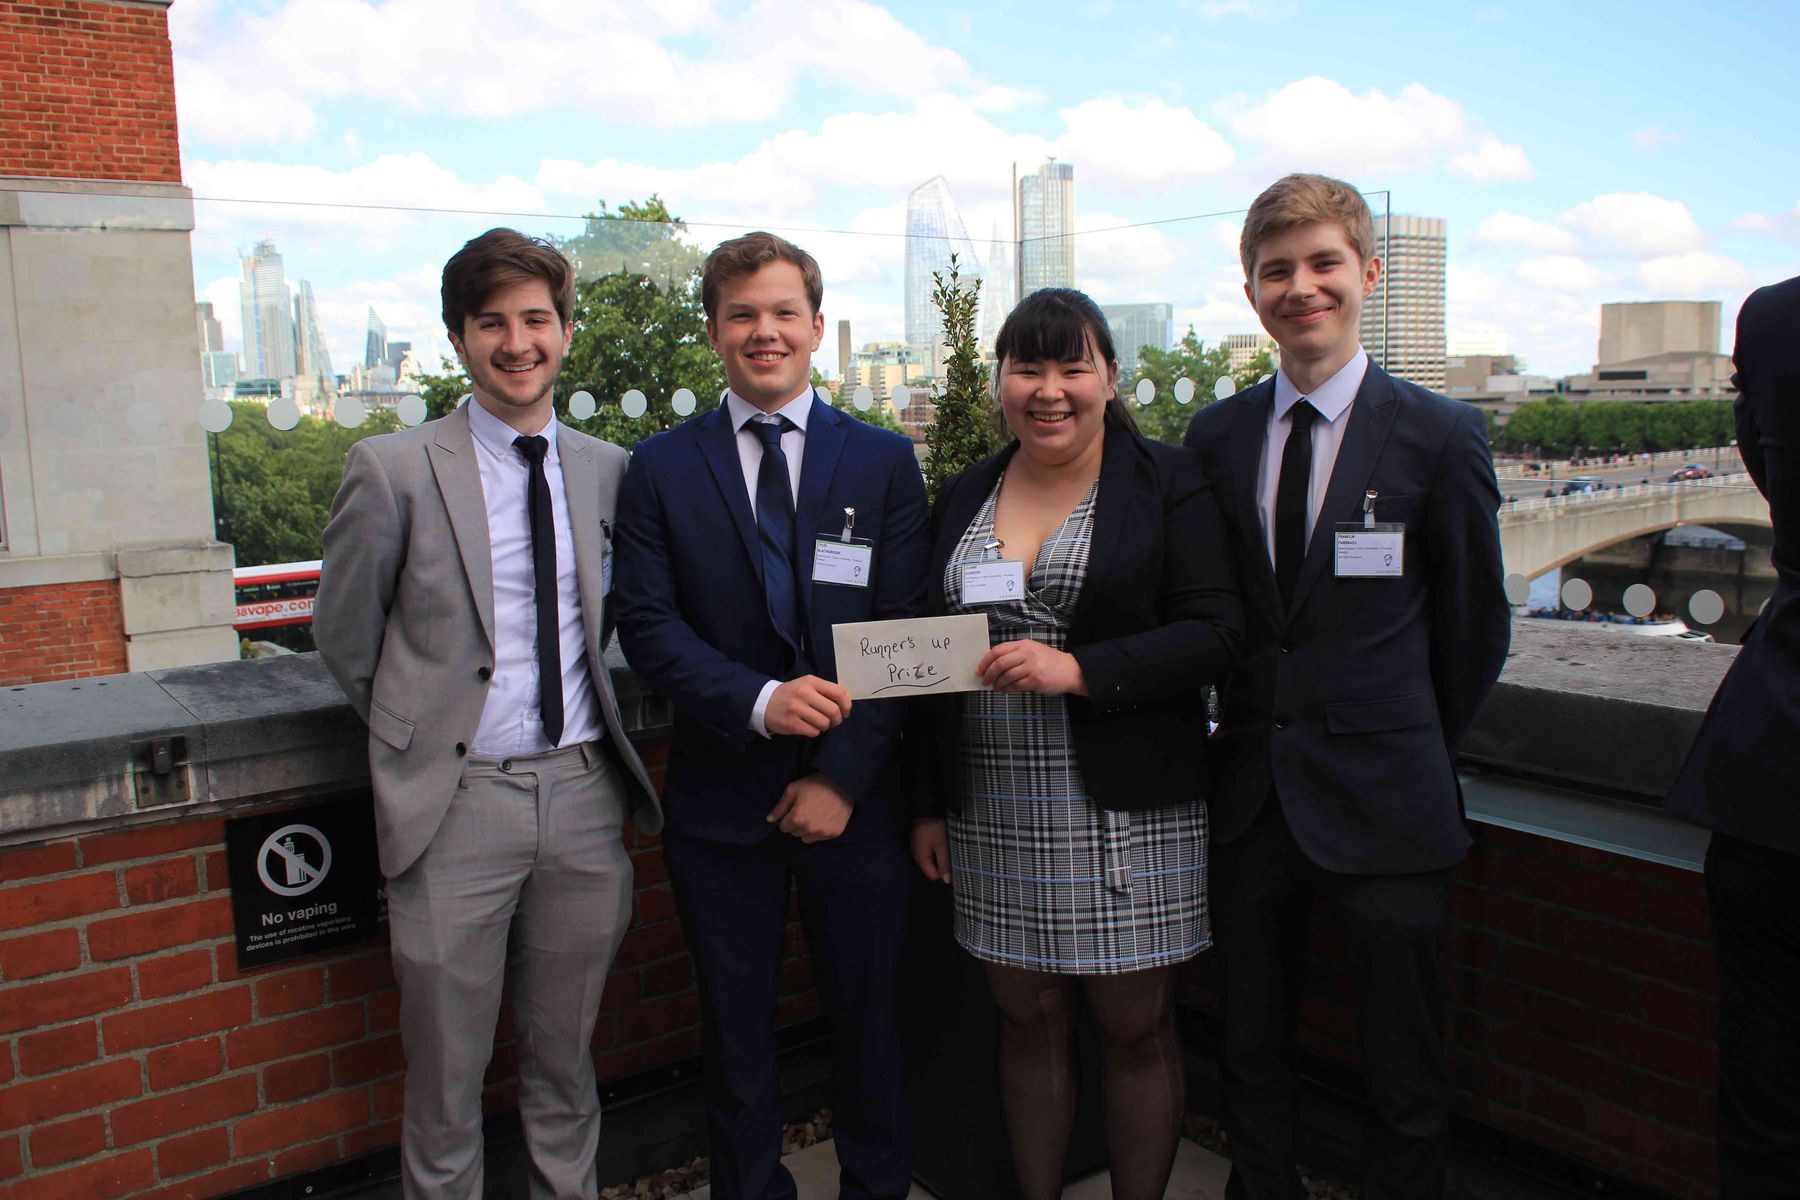 Ashley Marlborough, Franklin Fairbrass, Tyler Blackborough and Joanne Robinson: Engineers Without Borders UK competition